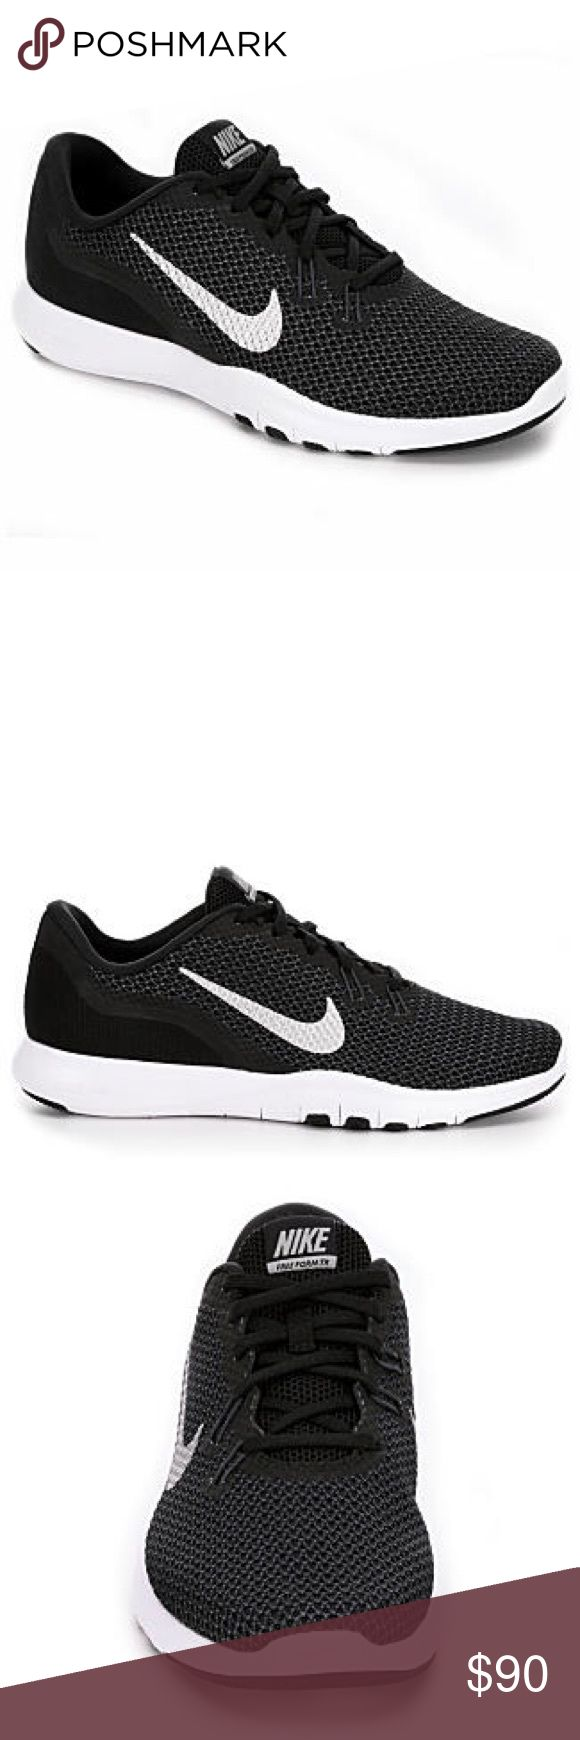 🔥NWT🔥MAKE OFFER🔥Women's Nike Flex TR🔥 Brand New in original box!! Perfect workout sneaker. Lightweight & breathable plus traction patter on  outsole !!! For a sturdy and smooth routine!! (Offers accepted, no trades) Nike Shoes Sneakers